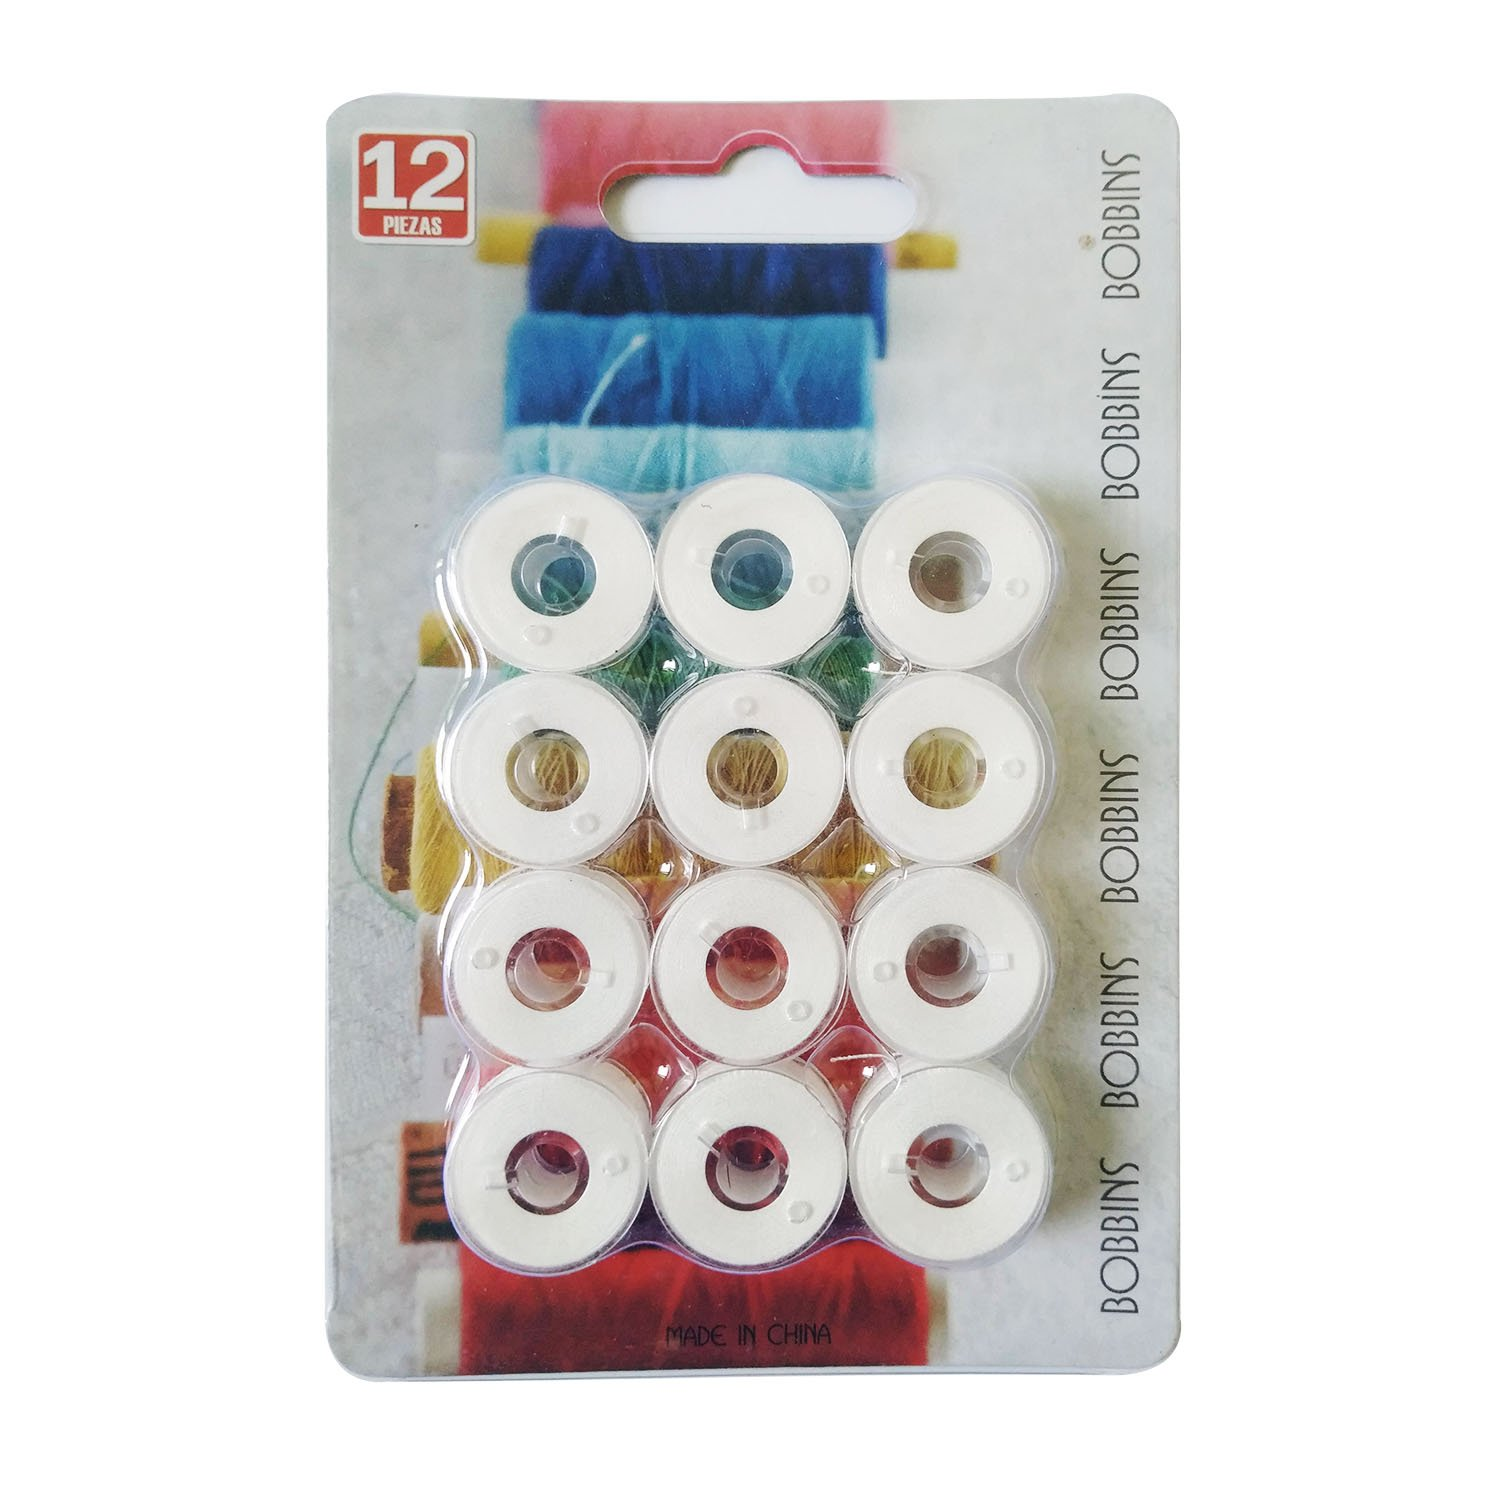 25 Pcs Bobbins and Sewing Thread with Case for Brother Singer Babylock Janome Kenmore (White) JZKJ